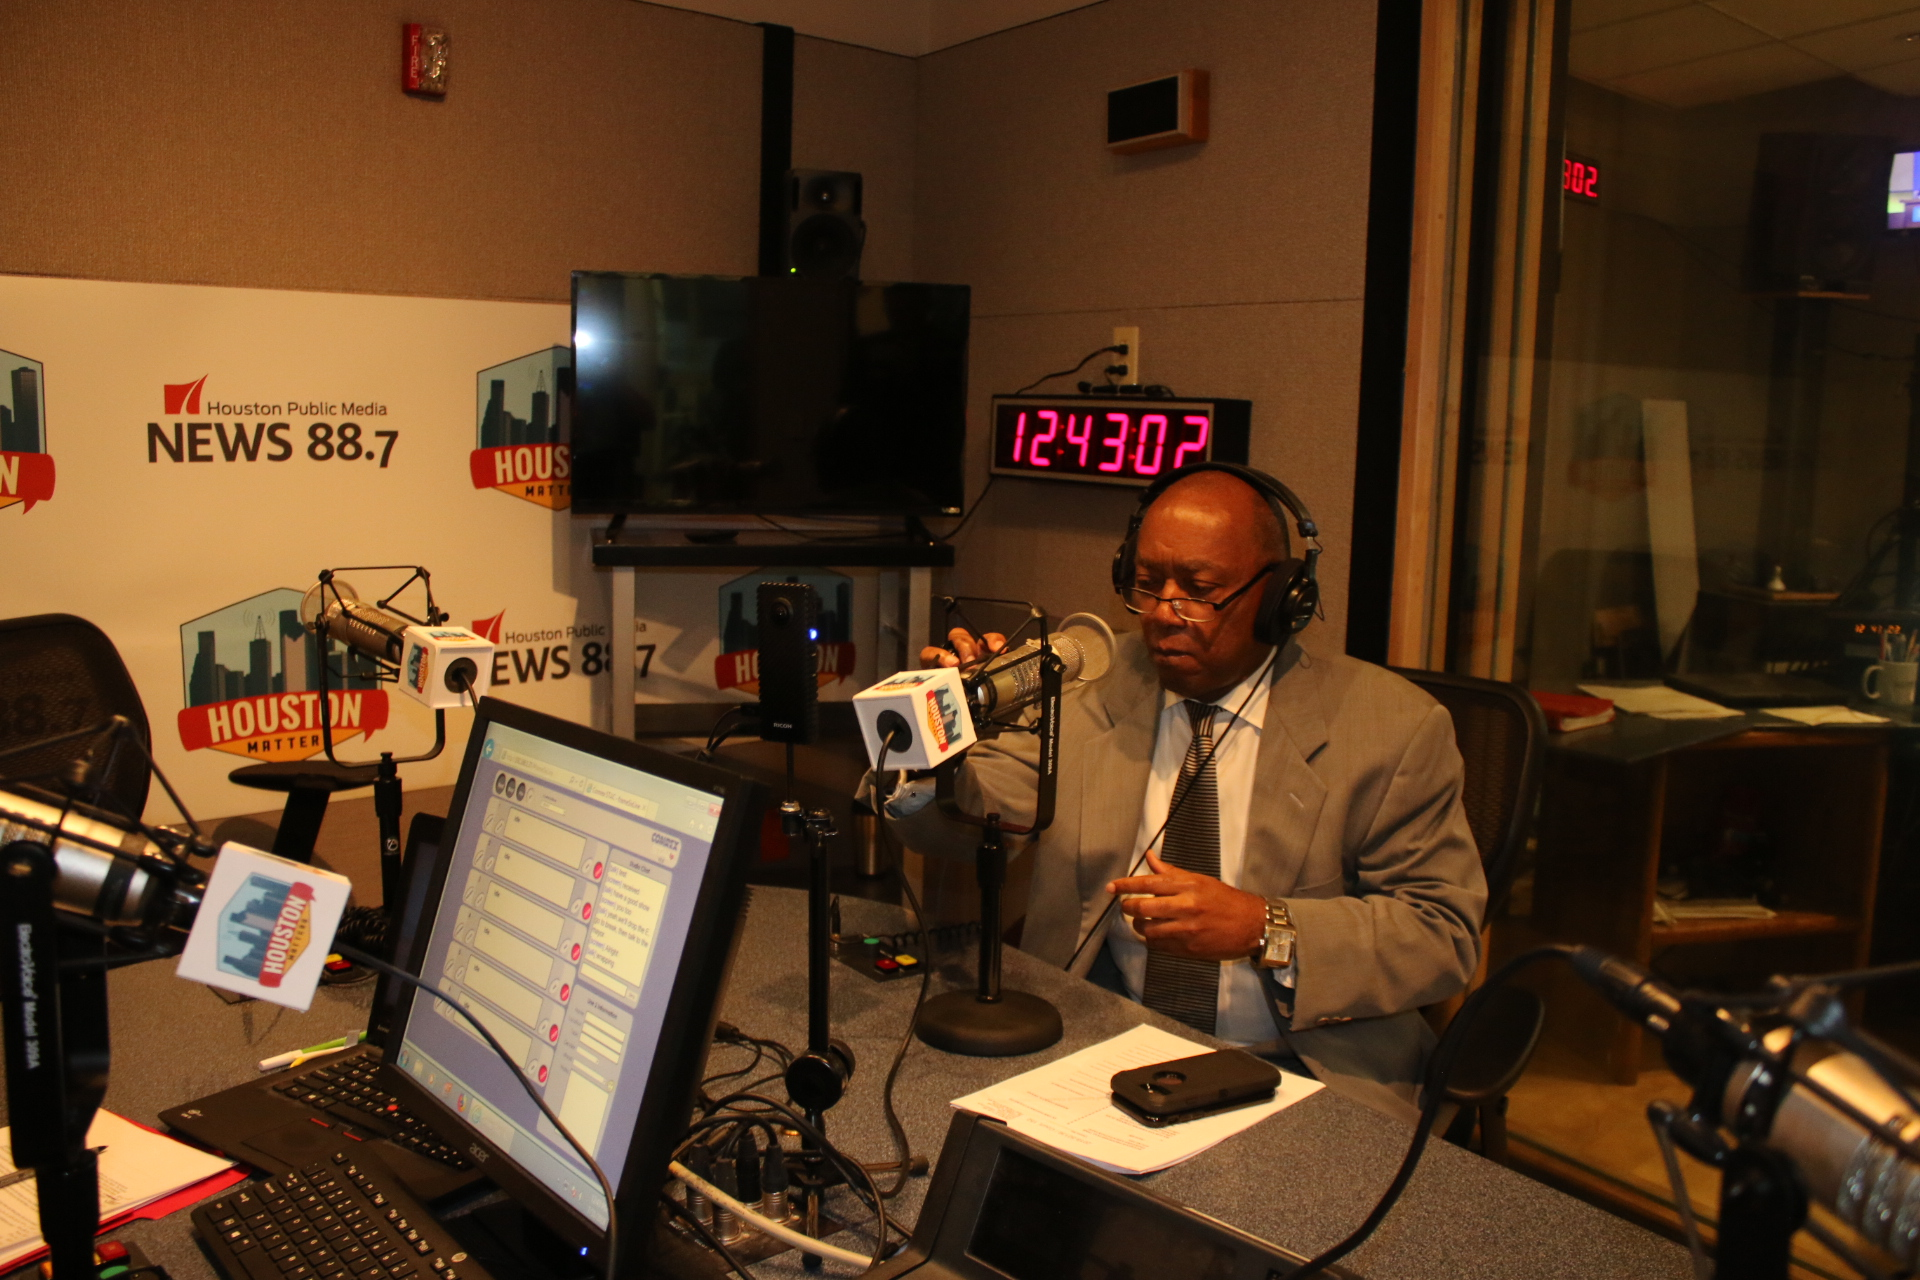 On July 31, 2018, Mayor Sylvester Turner spoke with Houston matters about a lawsuit the Houston Professional Fire Fighters has filed against him and Council Member Dave Martin.